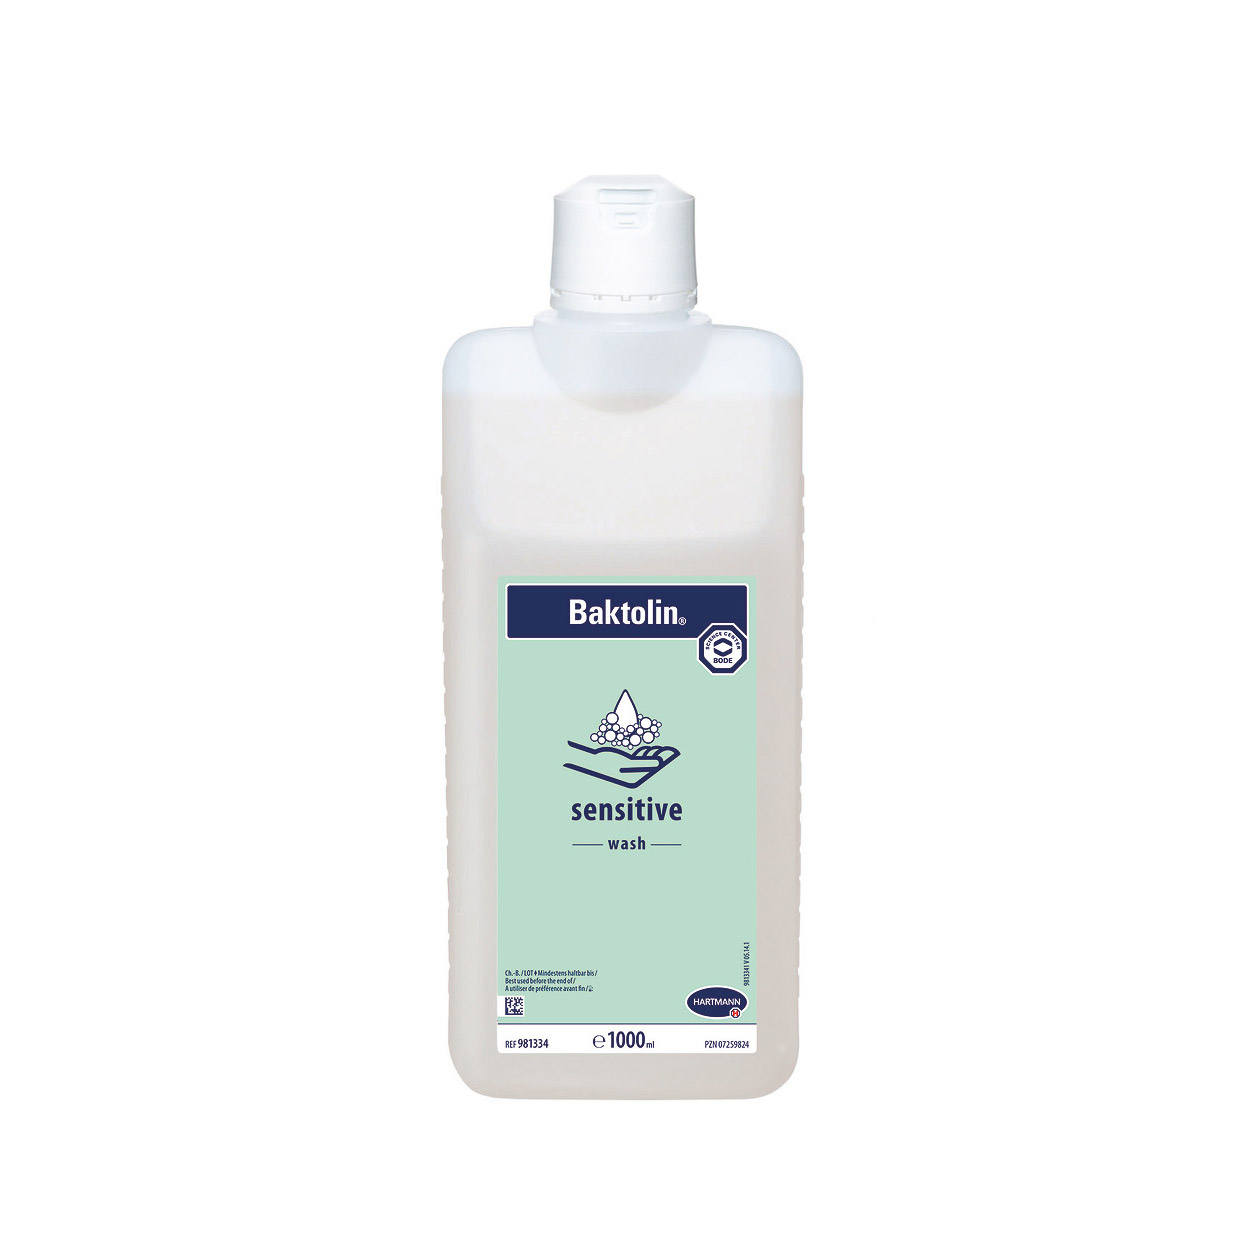 Baktolin® sensitive, 1 Liter Flasche